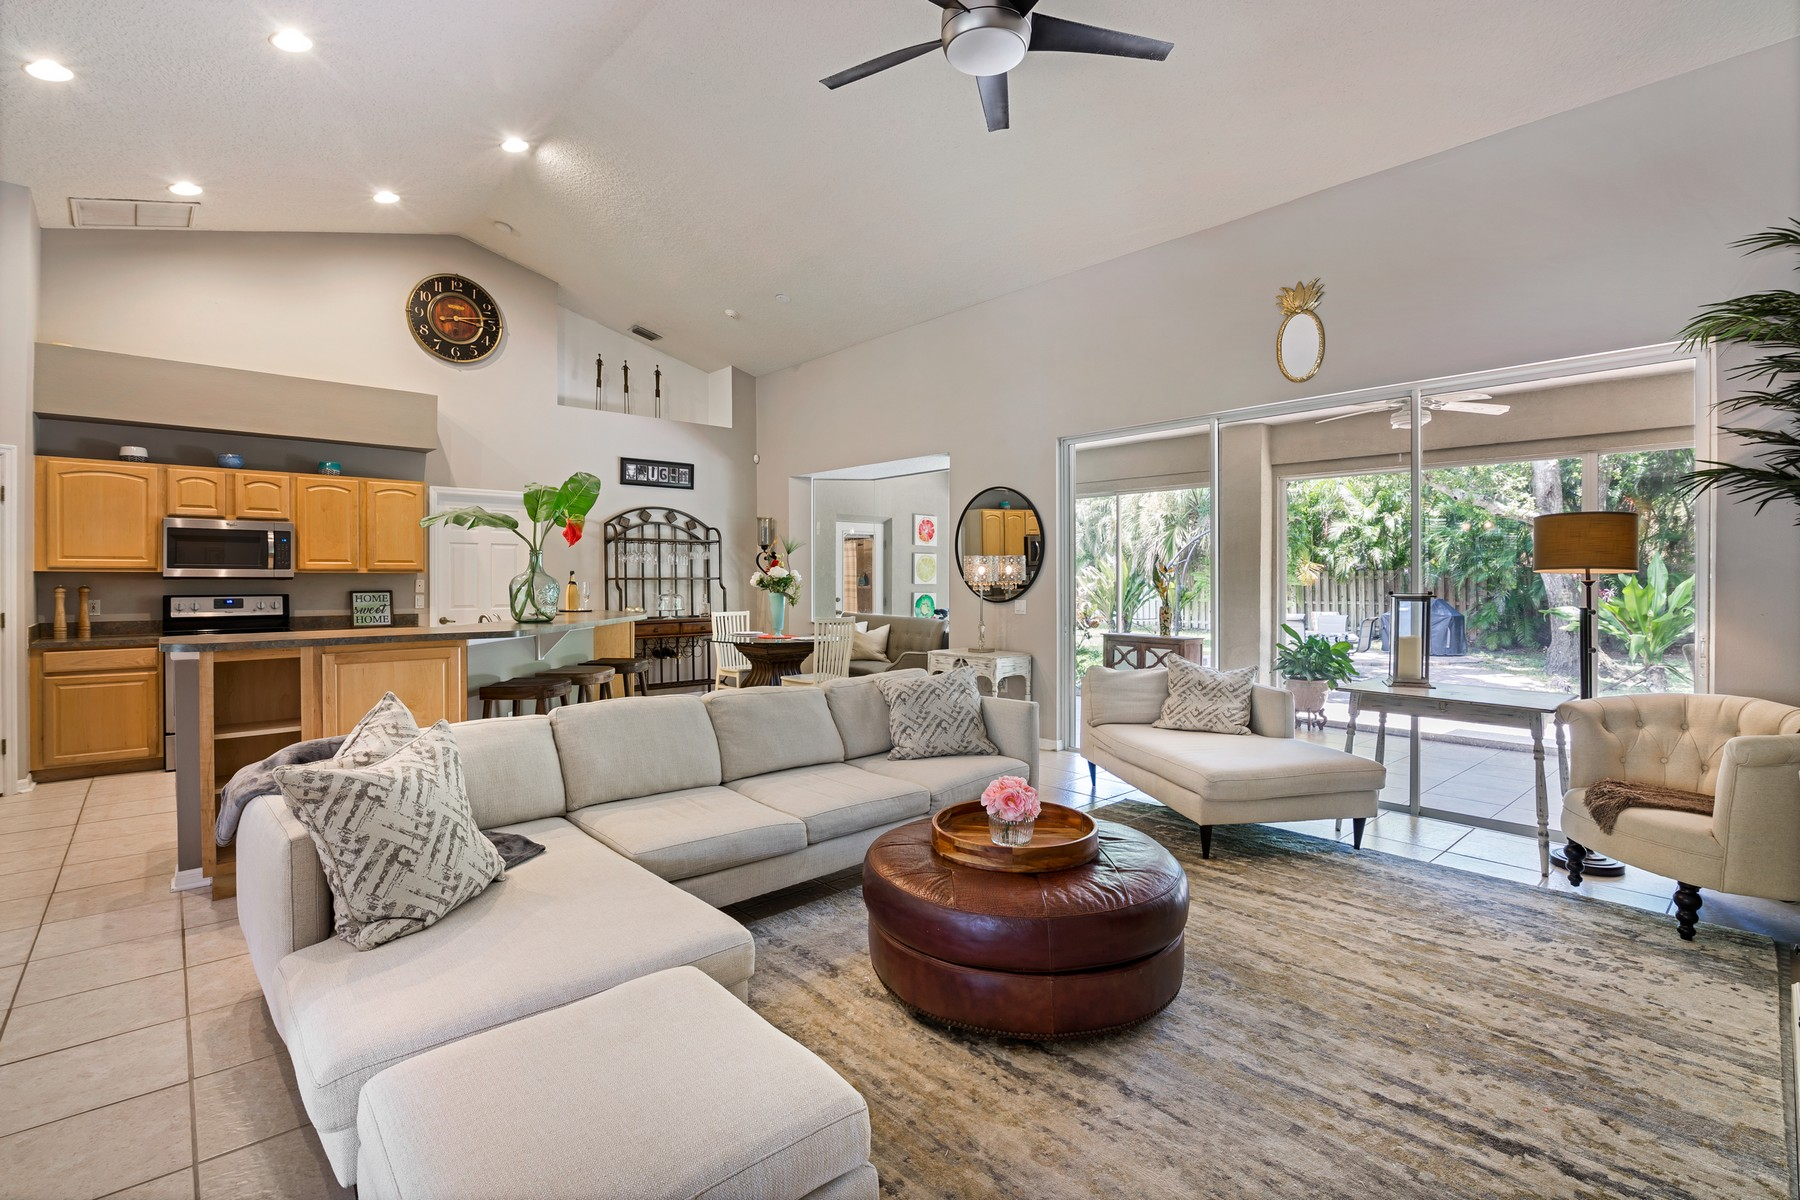 Additional photo for property listing at Your Tropical Oasis Awaits! 3828 S Tropical Trail Merritt Island, Florida 32952 United States